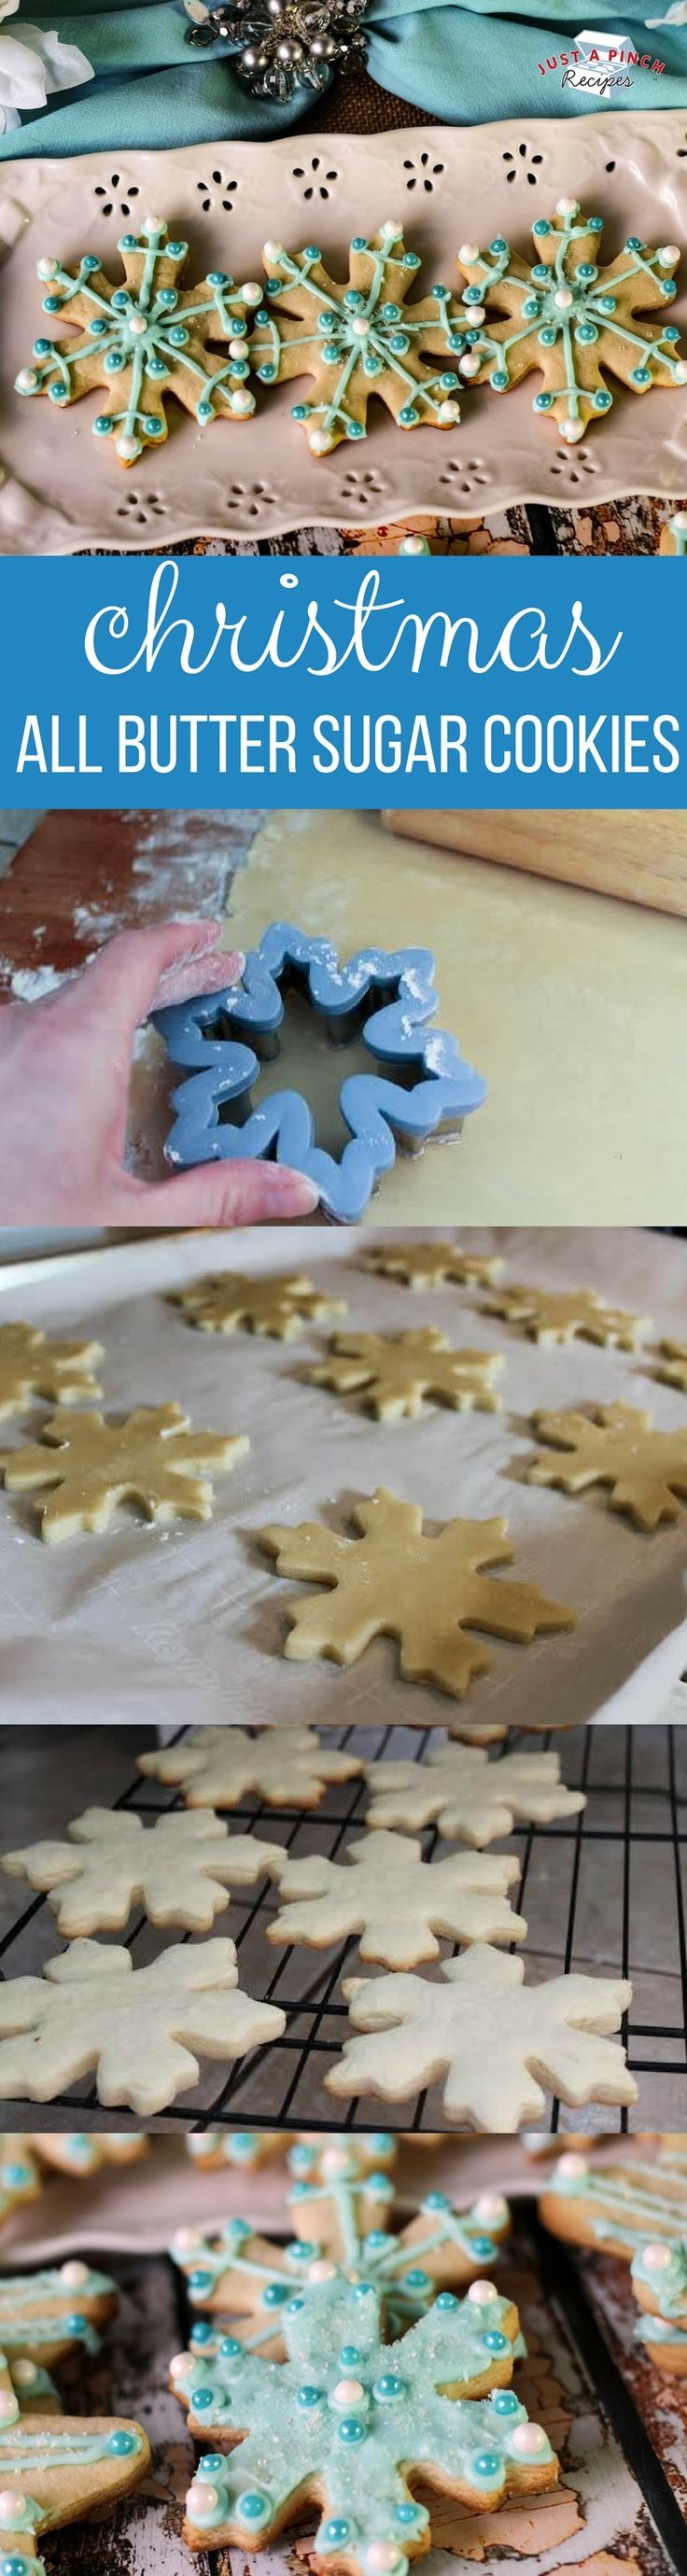 Christmas All Butter Sugar Cookies :  justapinch   #christmas  #cookies